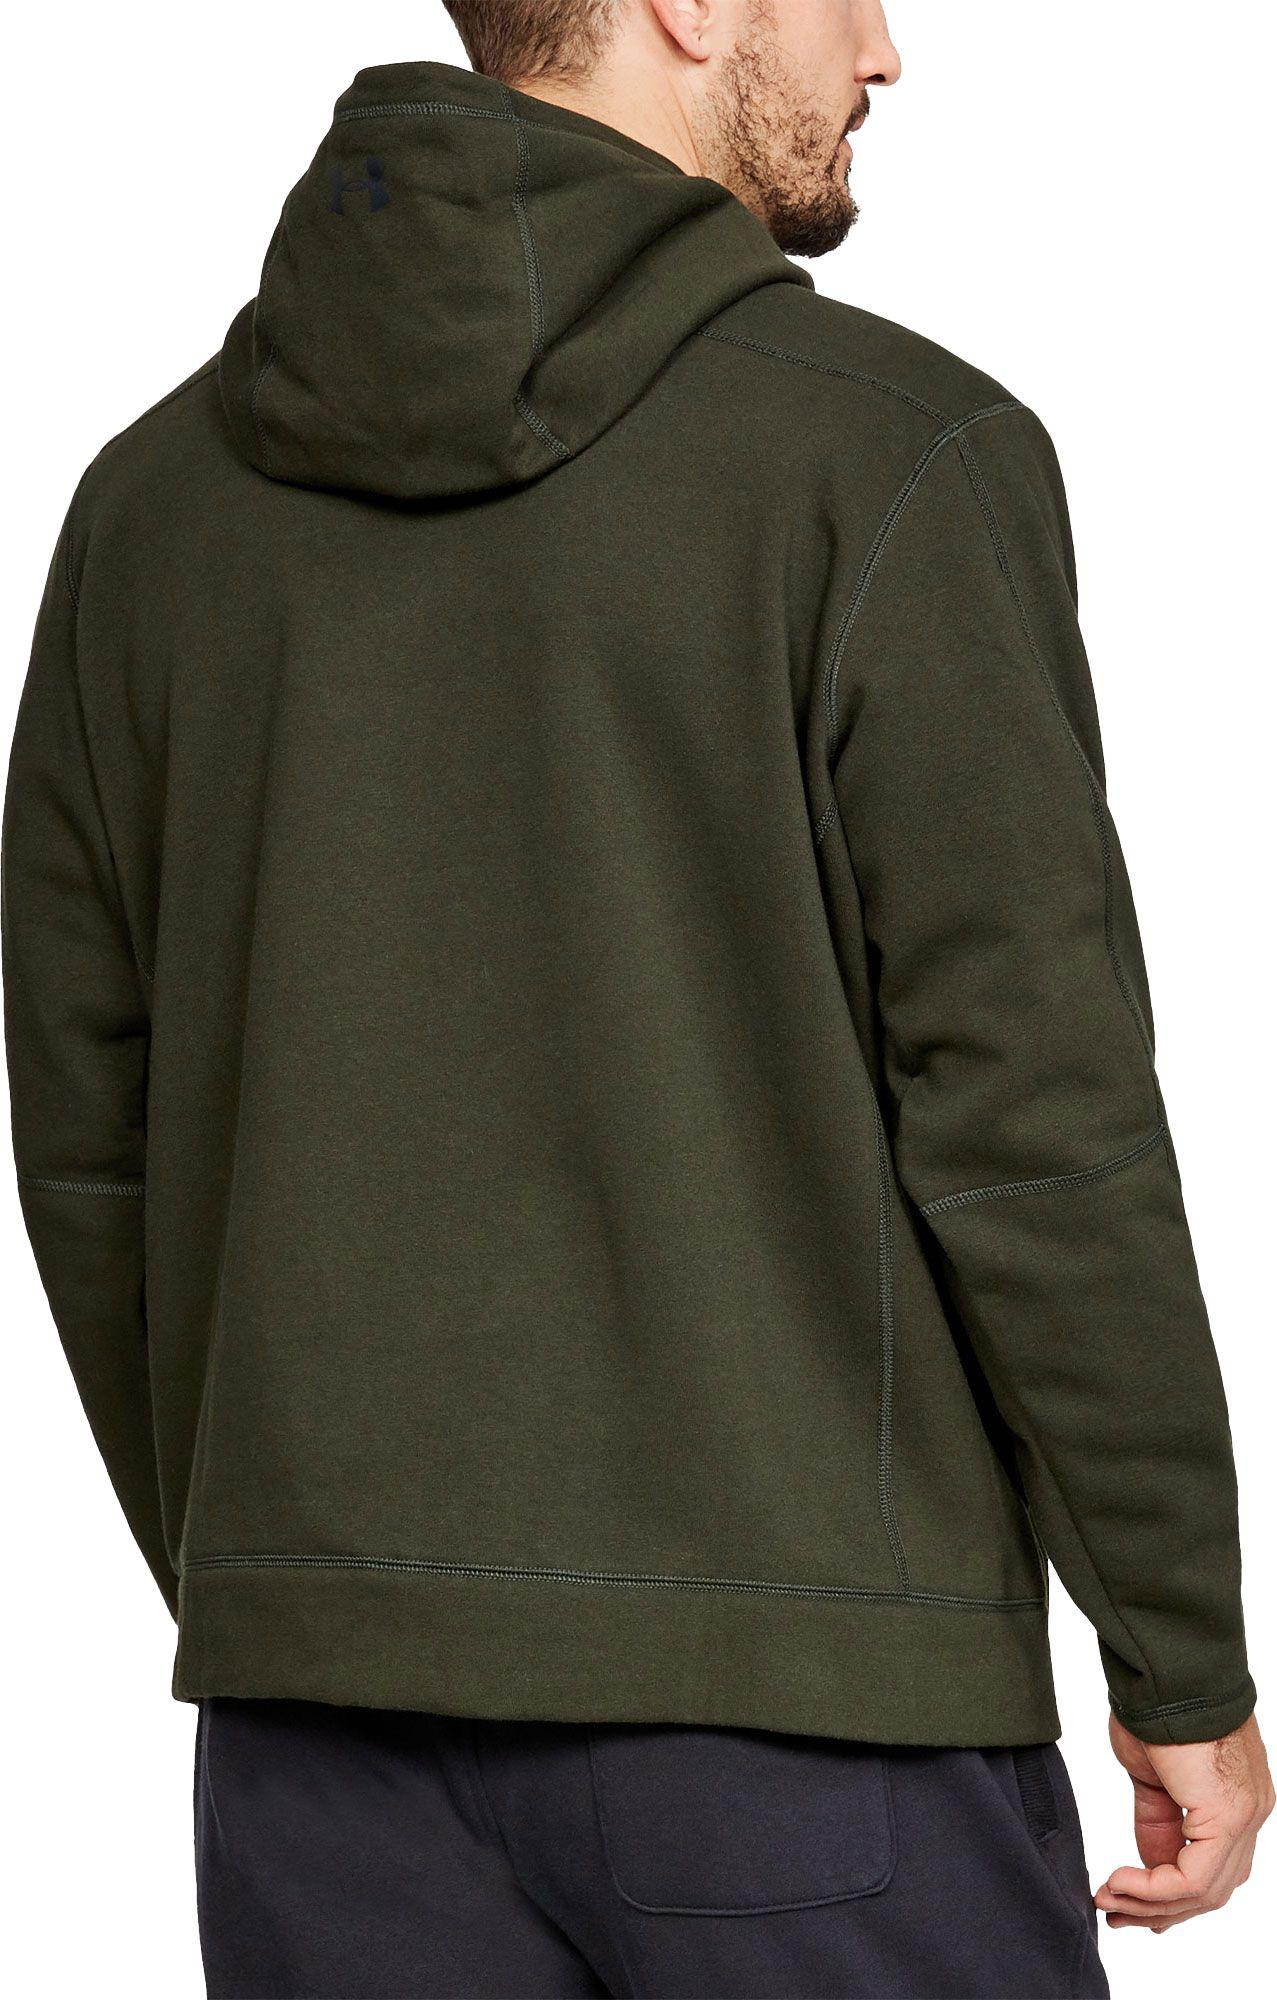 54bb0bb70 Lyst - Under Armour Rival Fleece Hunt Icon Hoodie in Green for Men under  armour men's